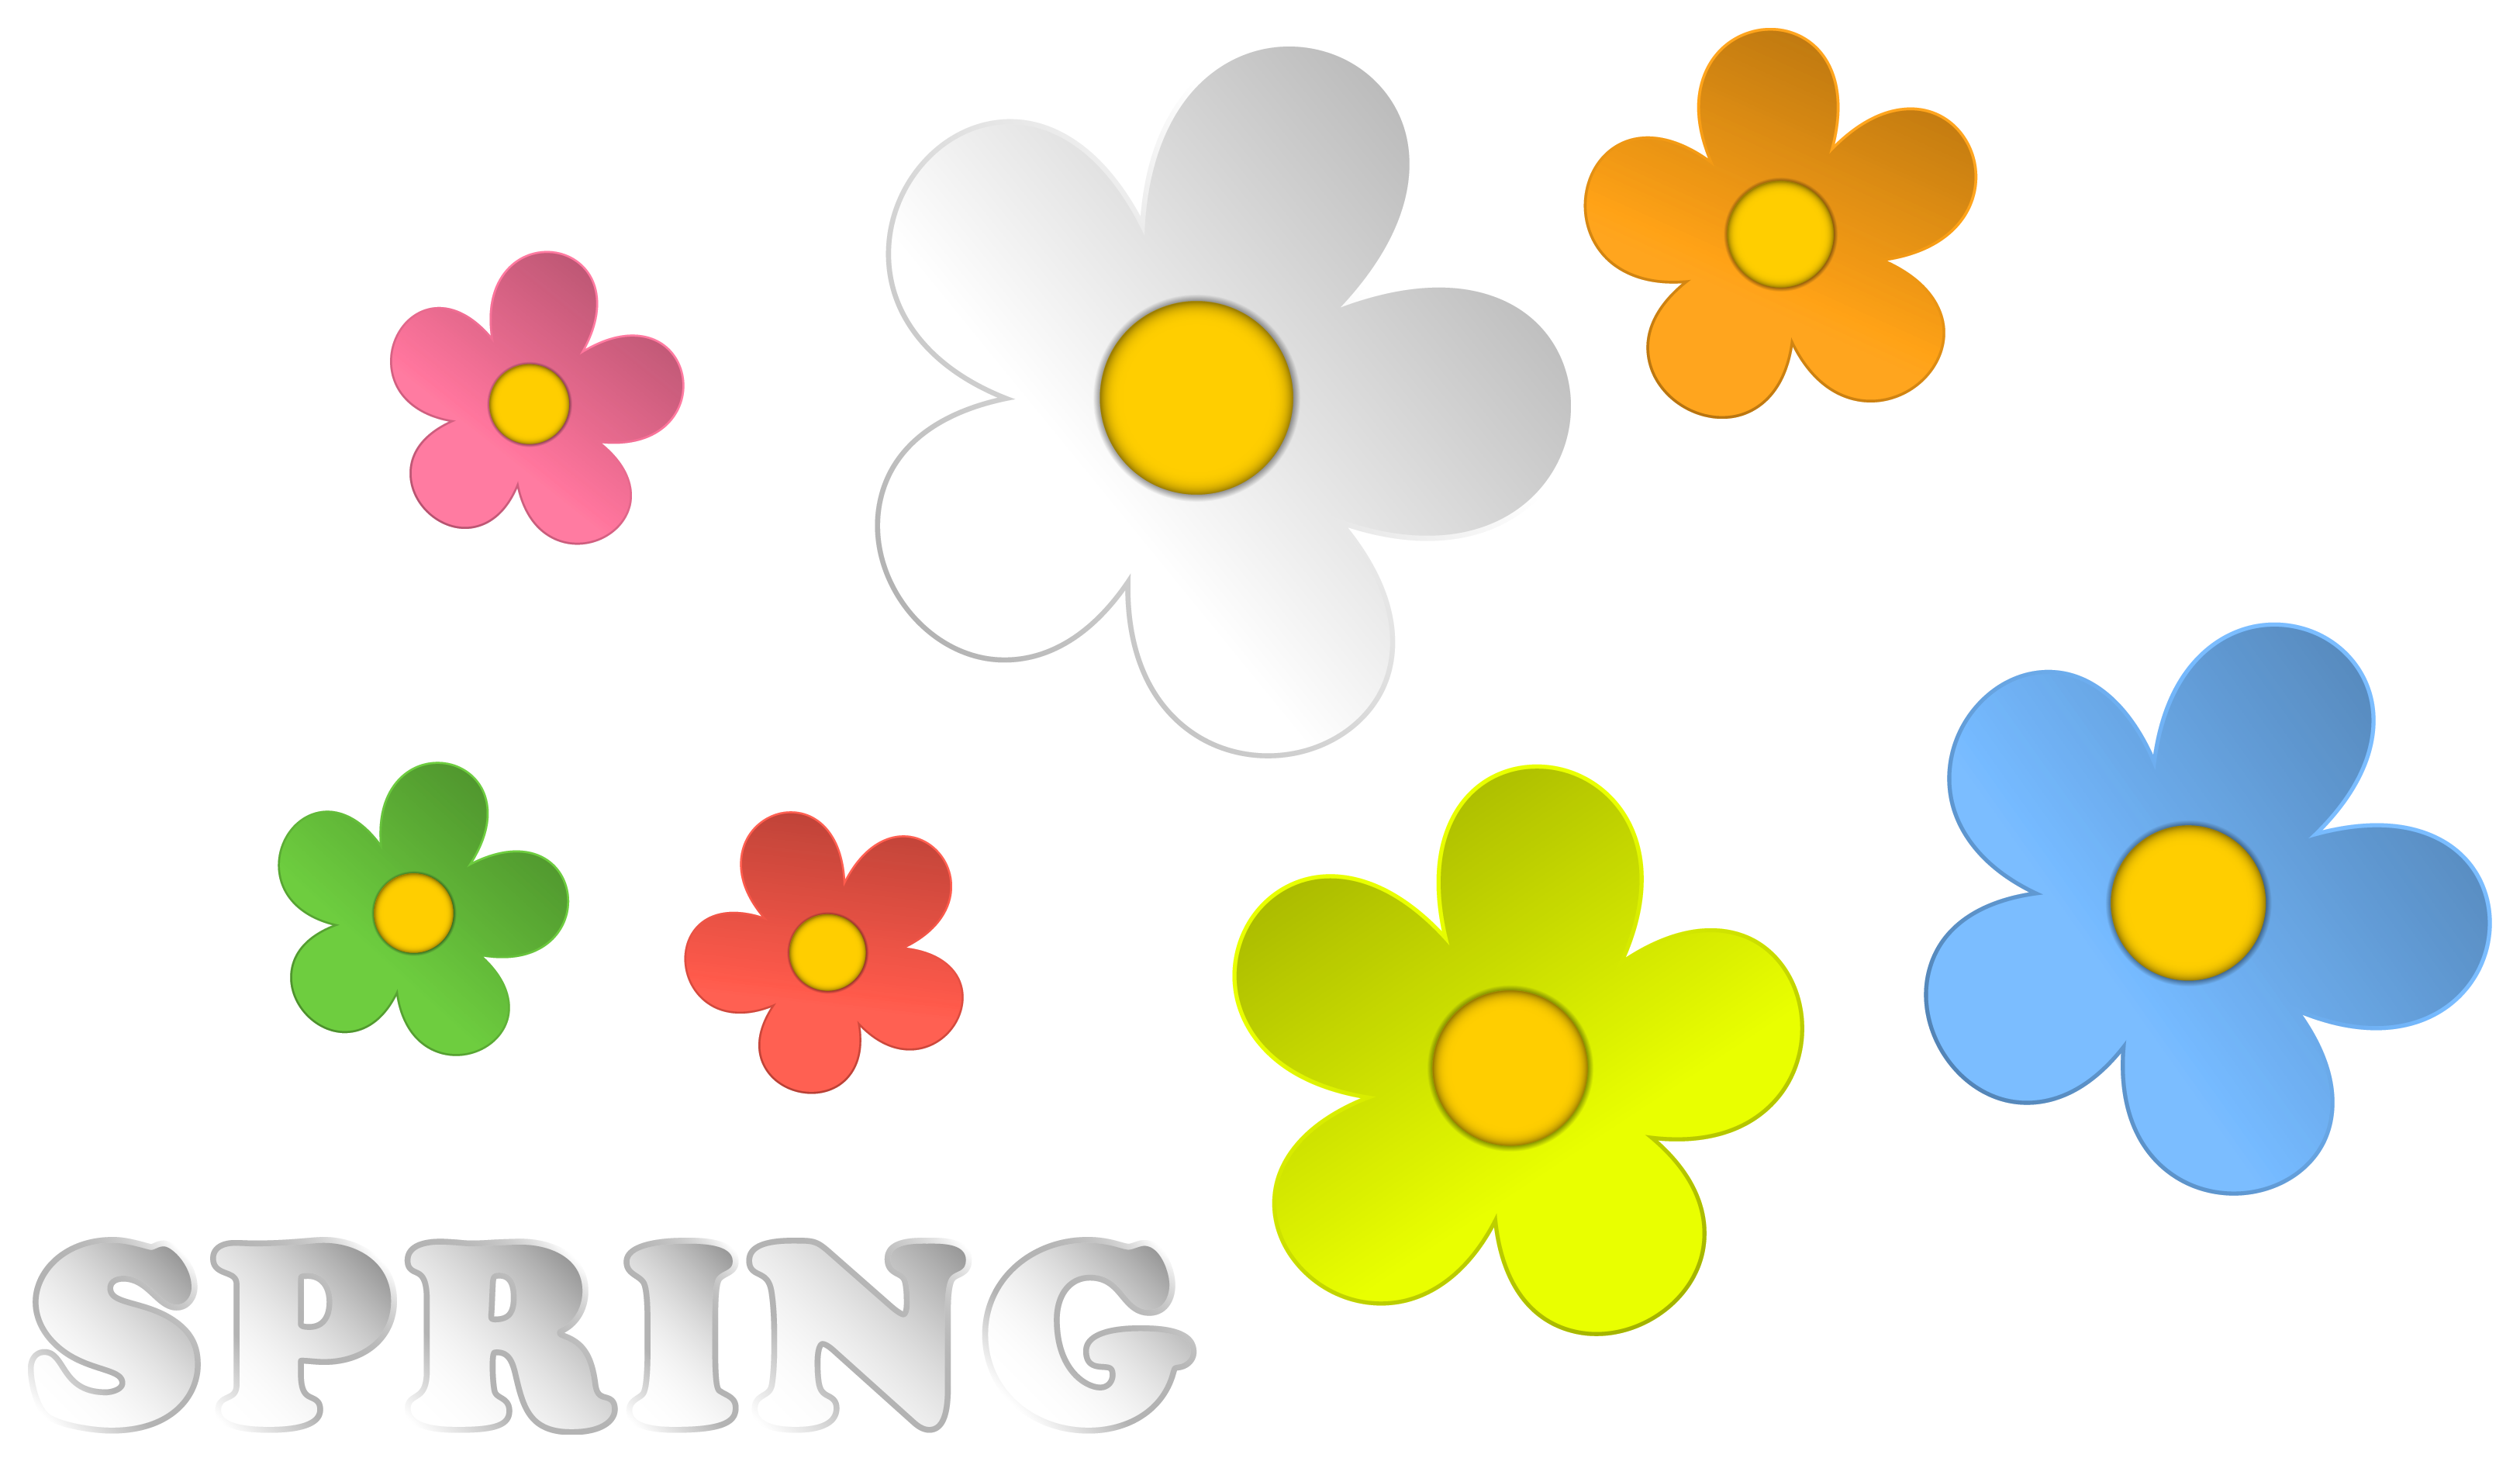 Free photos of spring flowers svg transparent Spring flower clipart png - ClipartFest svg transparent